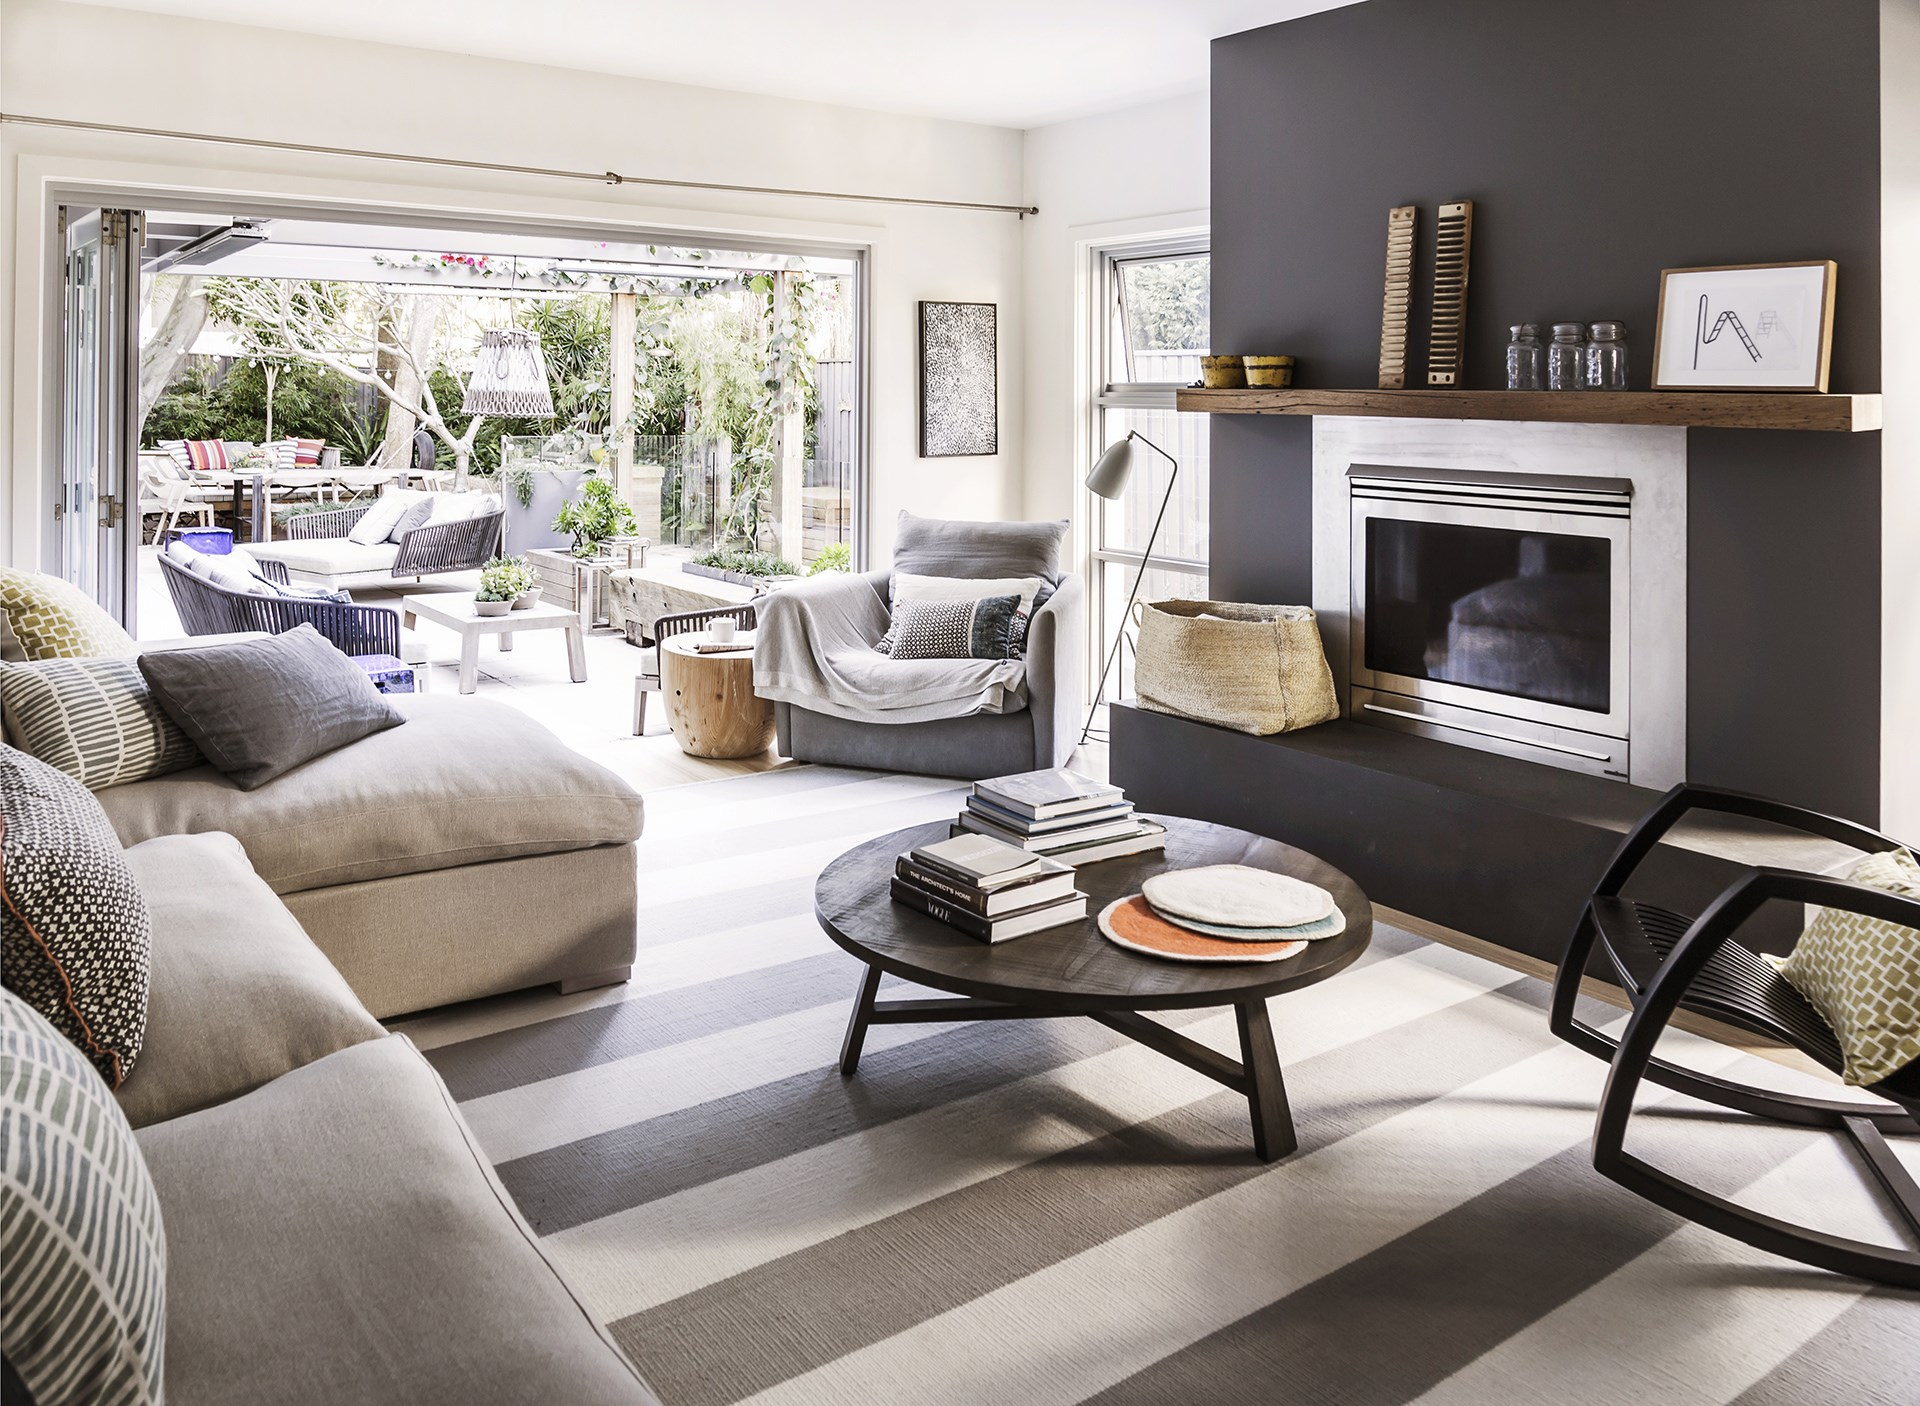 [A holiday-style retreat for a busy family](http://www.homestolove.com.au/holidaying-at-home-in-manly-2482). Photo: Maree Homer / *Australian House & Garden*